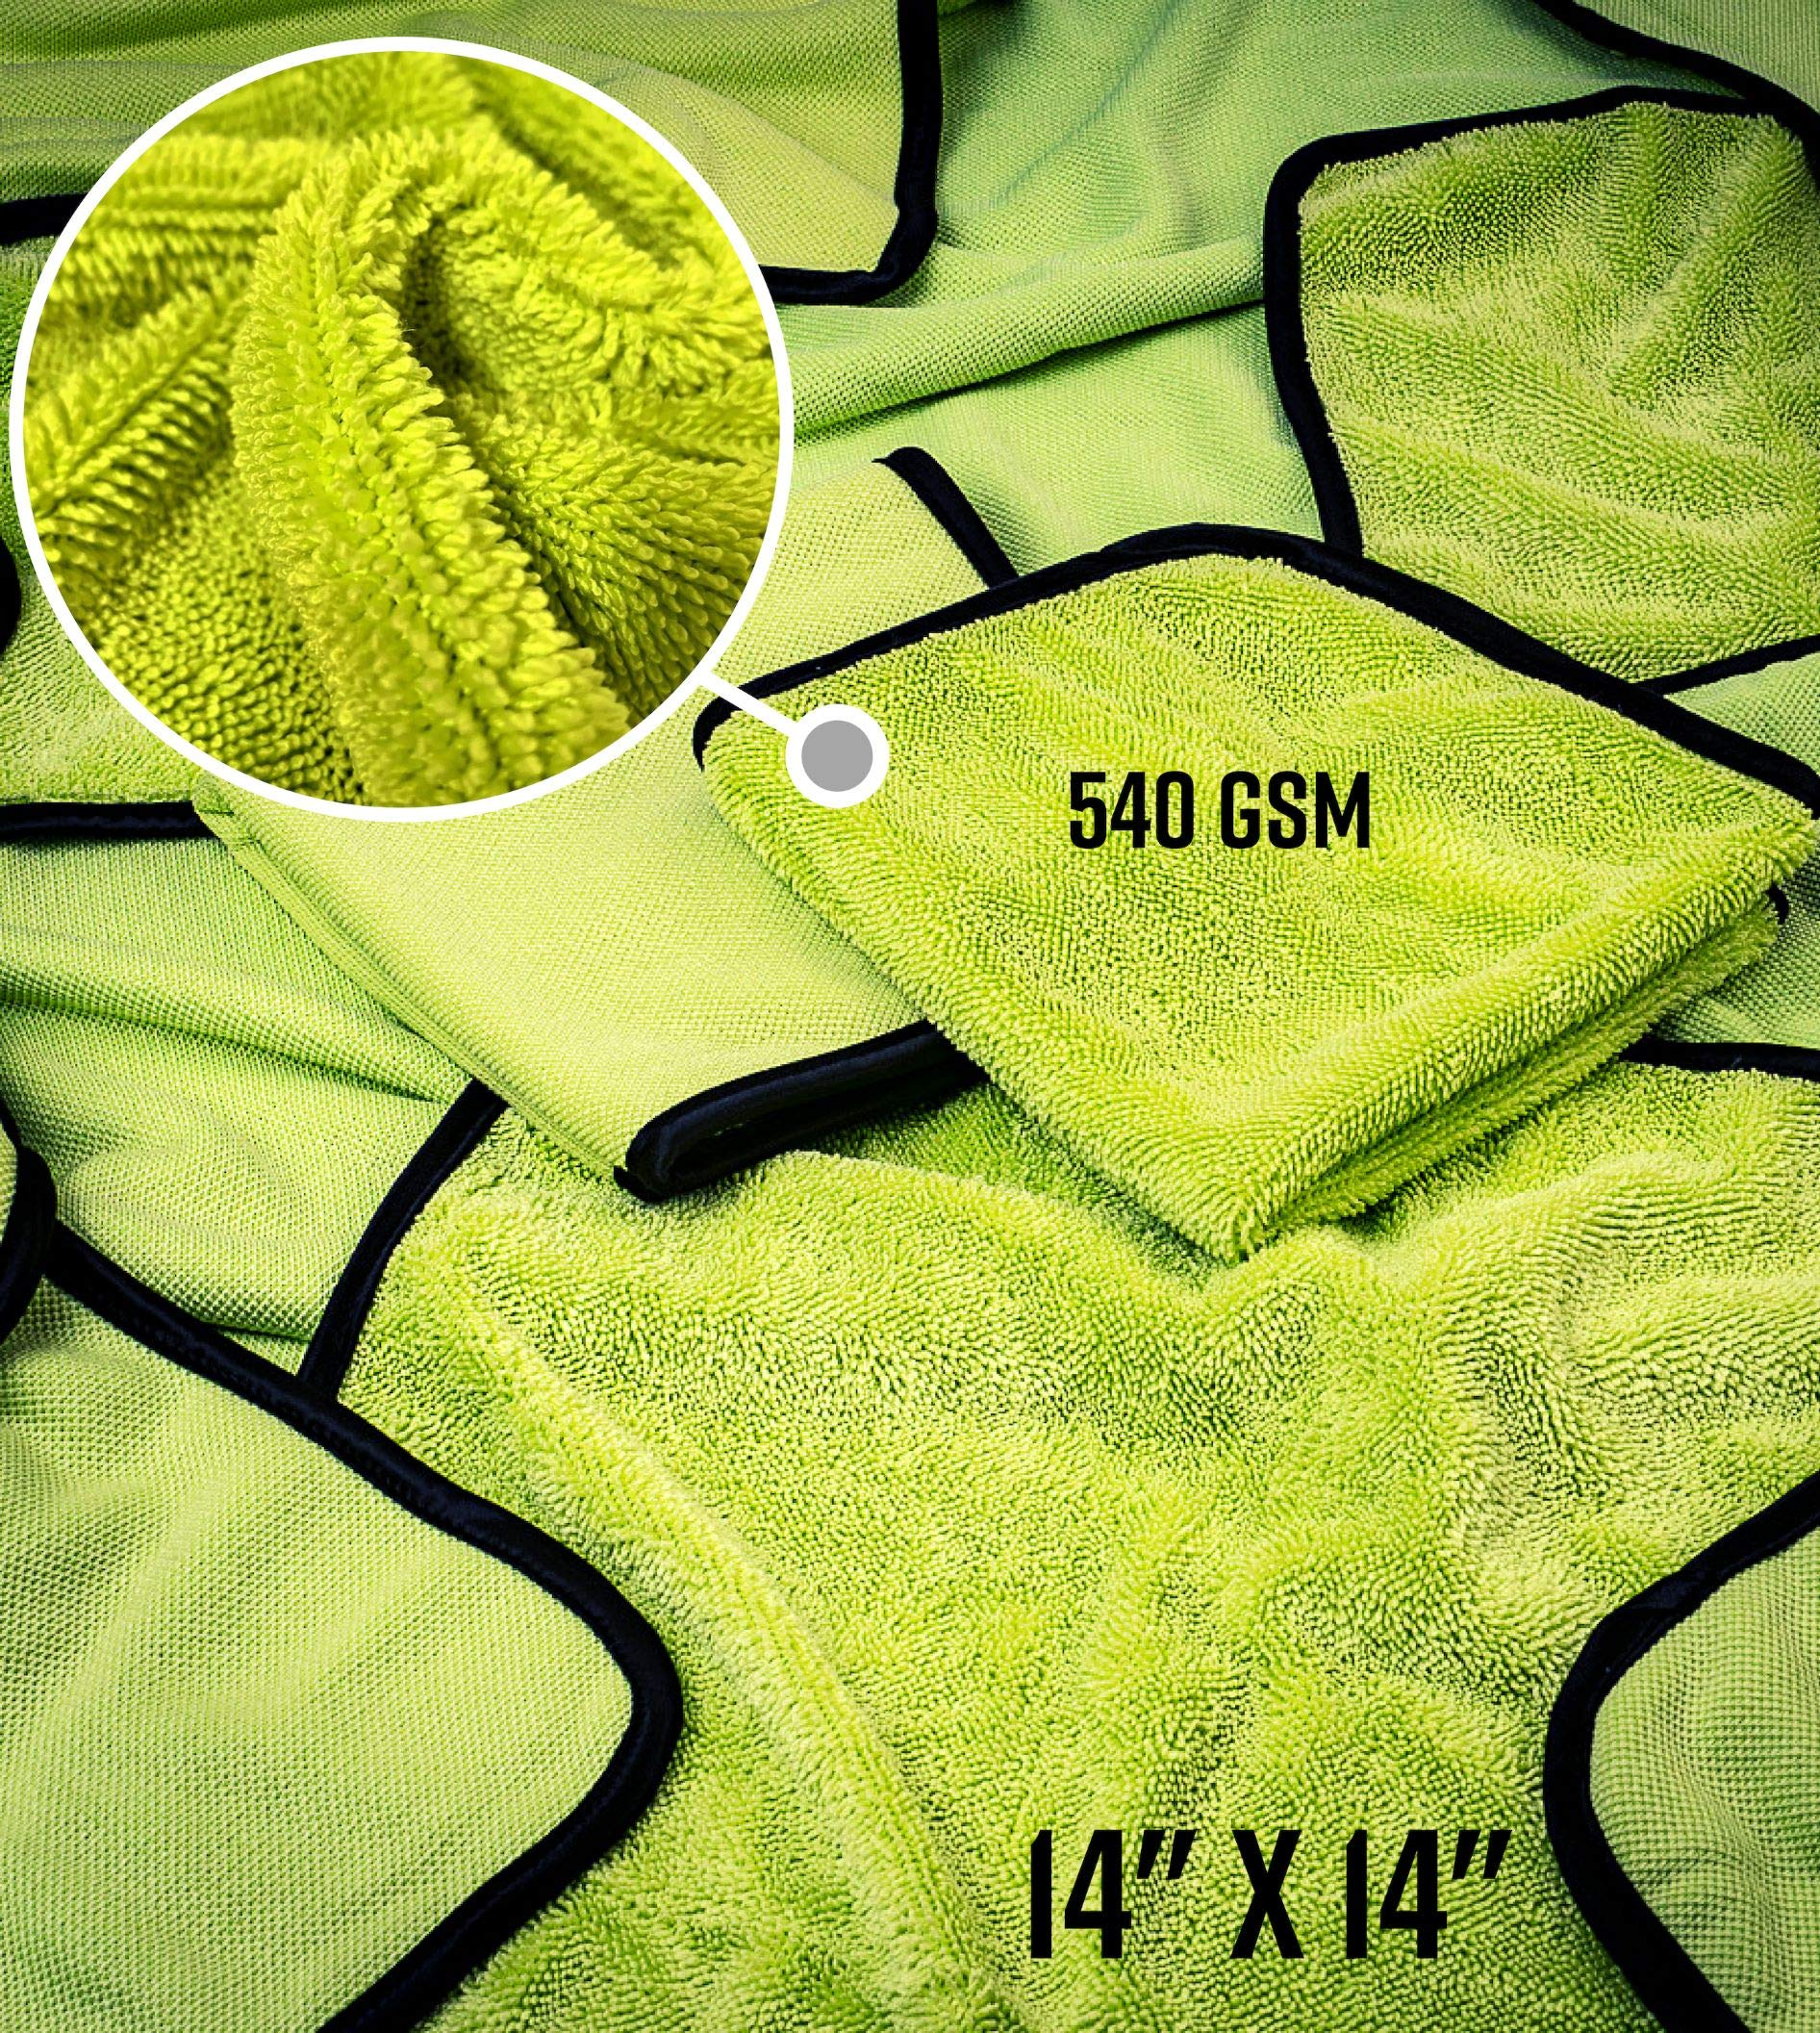 Adam's Essential Towel Bundle - The Best Collection of Car Cleaning, Washing, Drying & Detailing Microfiber Cloths - Wax, Polish, Wash & Dry Your Vehicle with Adam's Soft Car Towels by Adam's Polishes (Image #4)